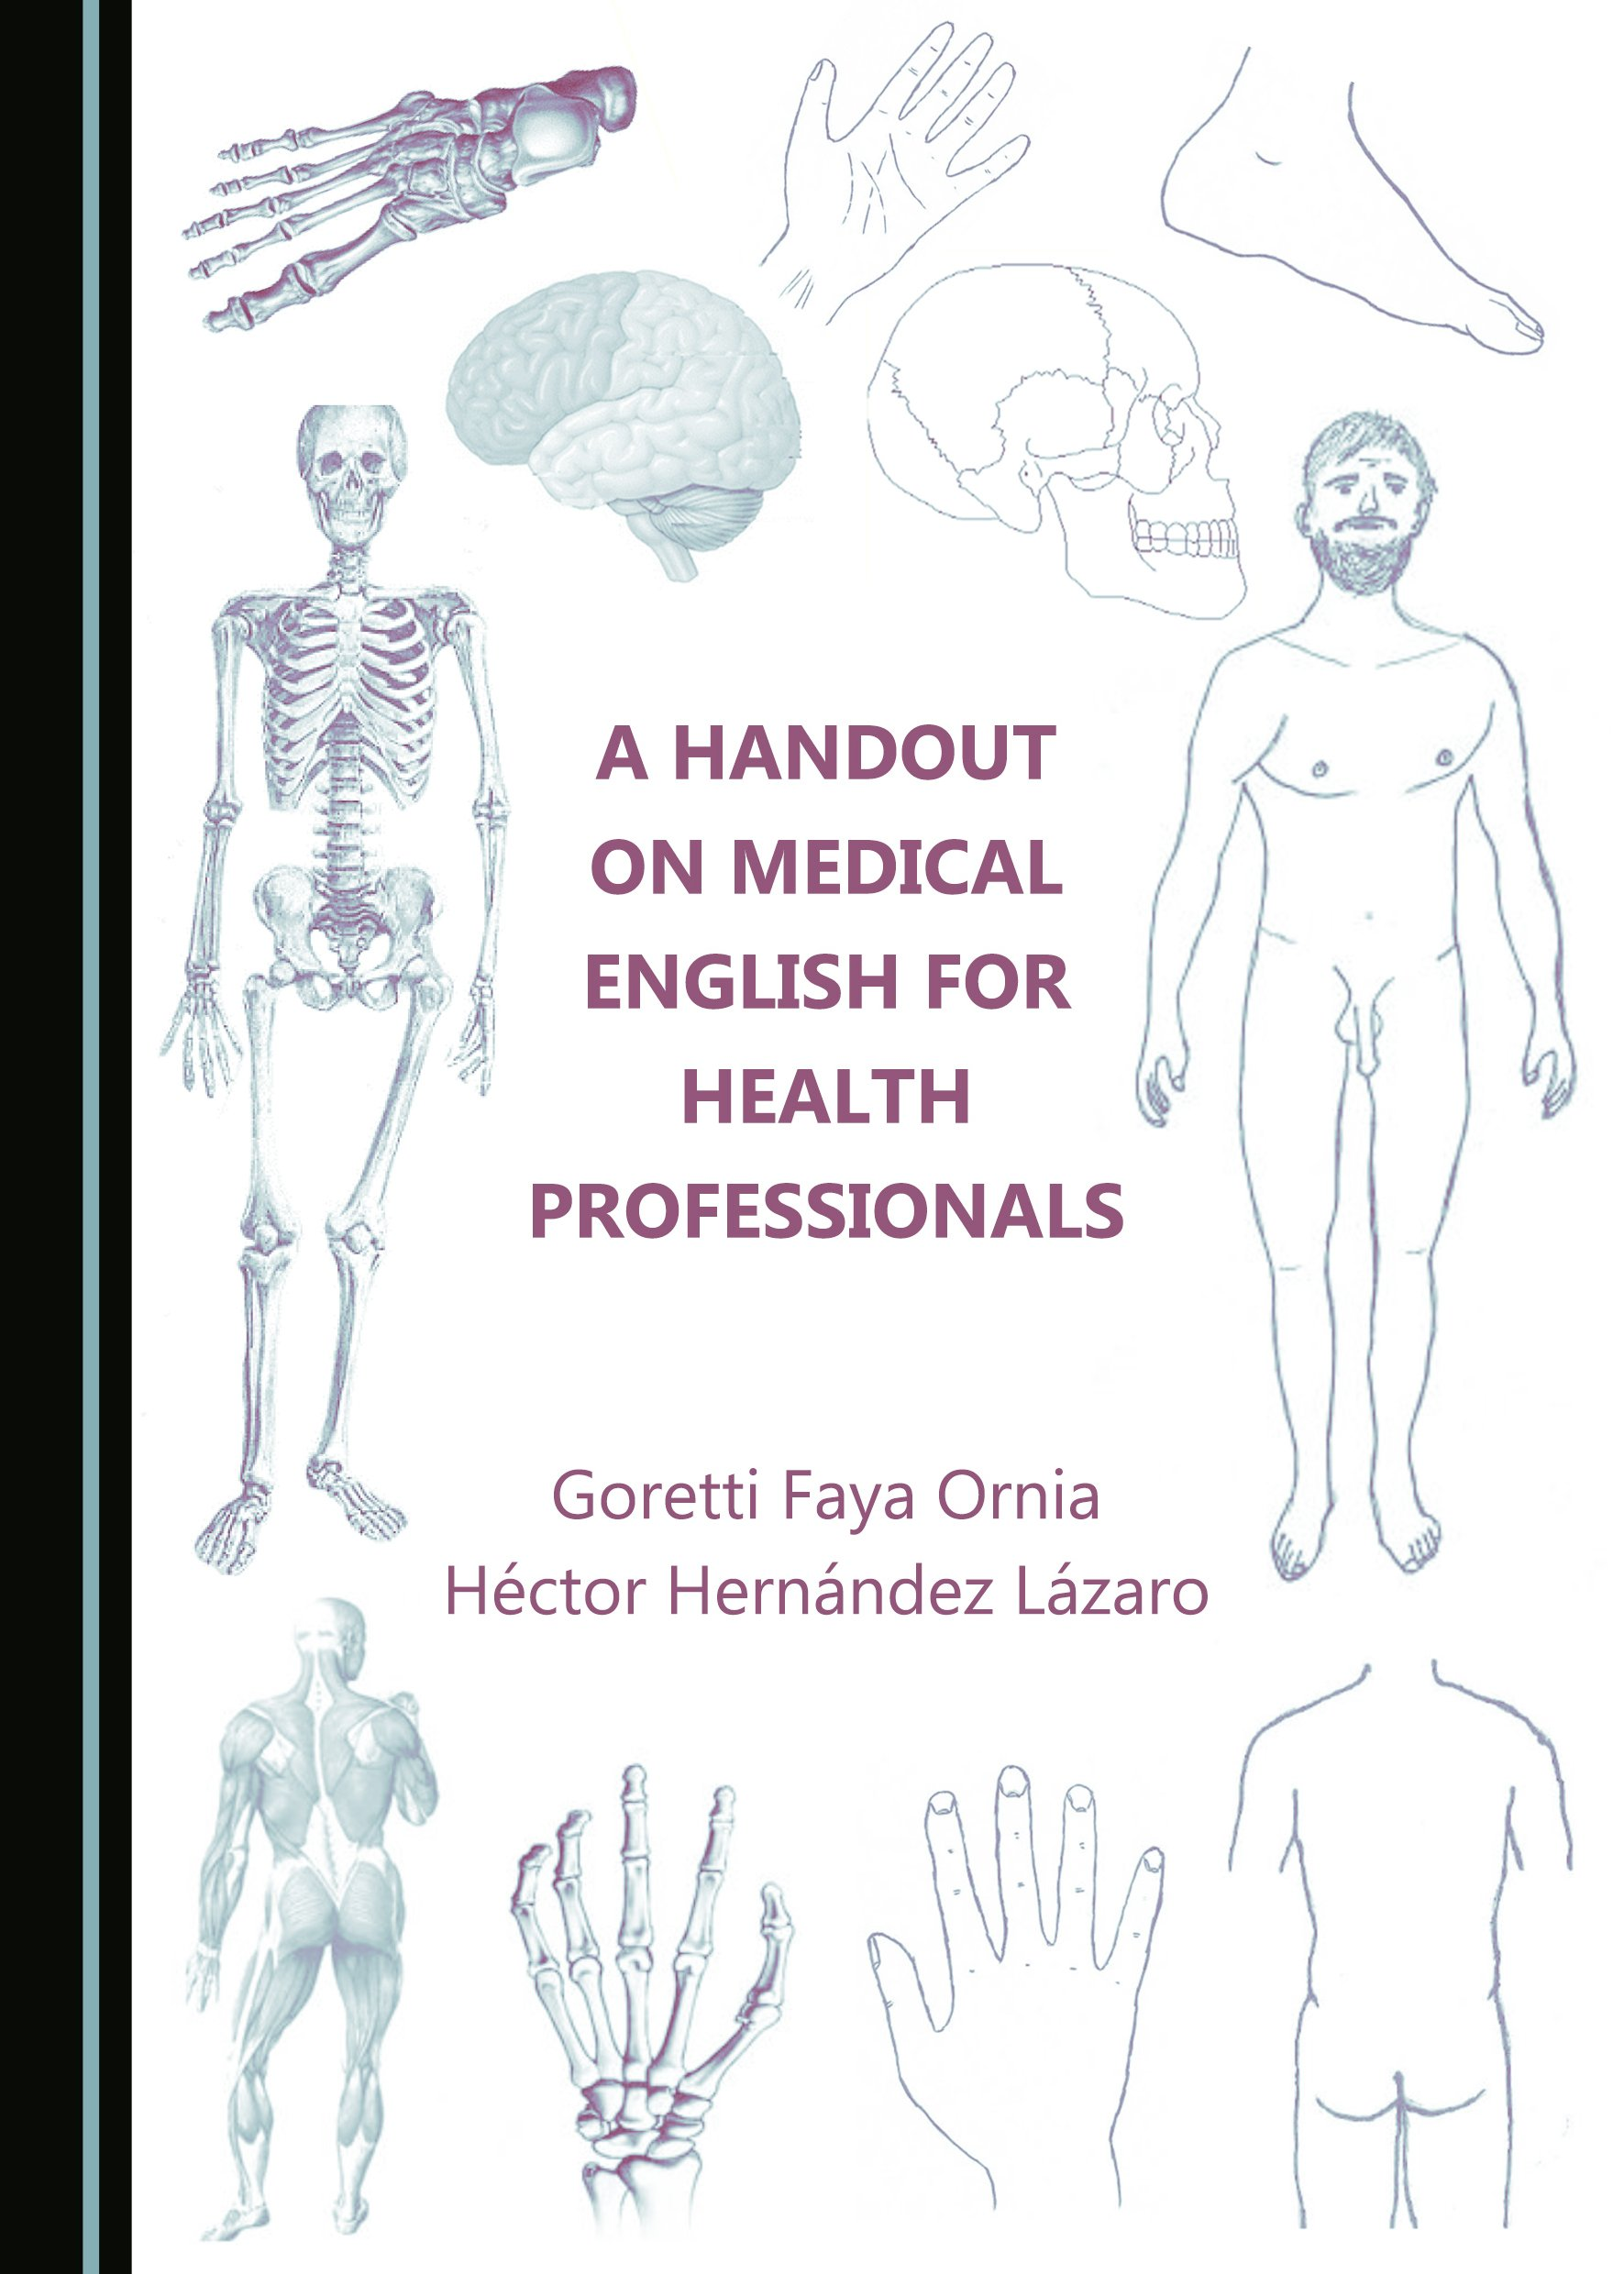 A Handout on Medical English for Health Professionals